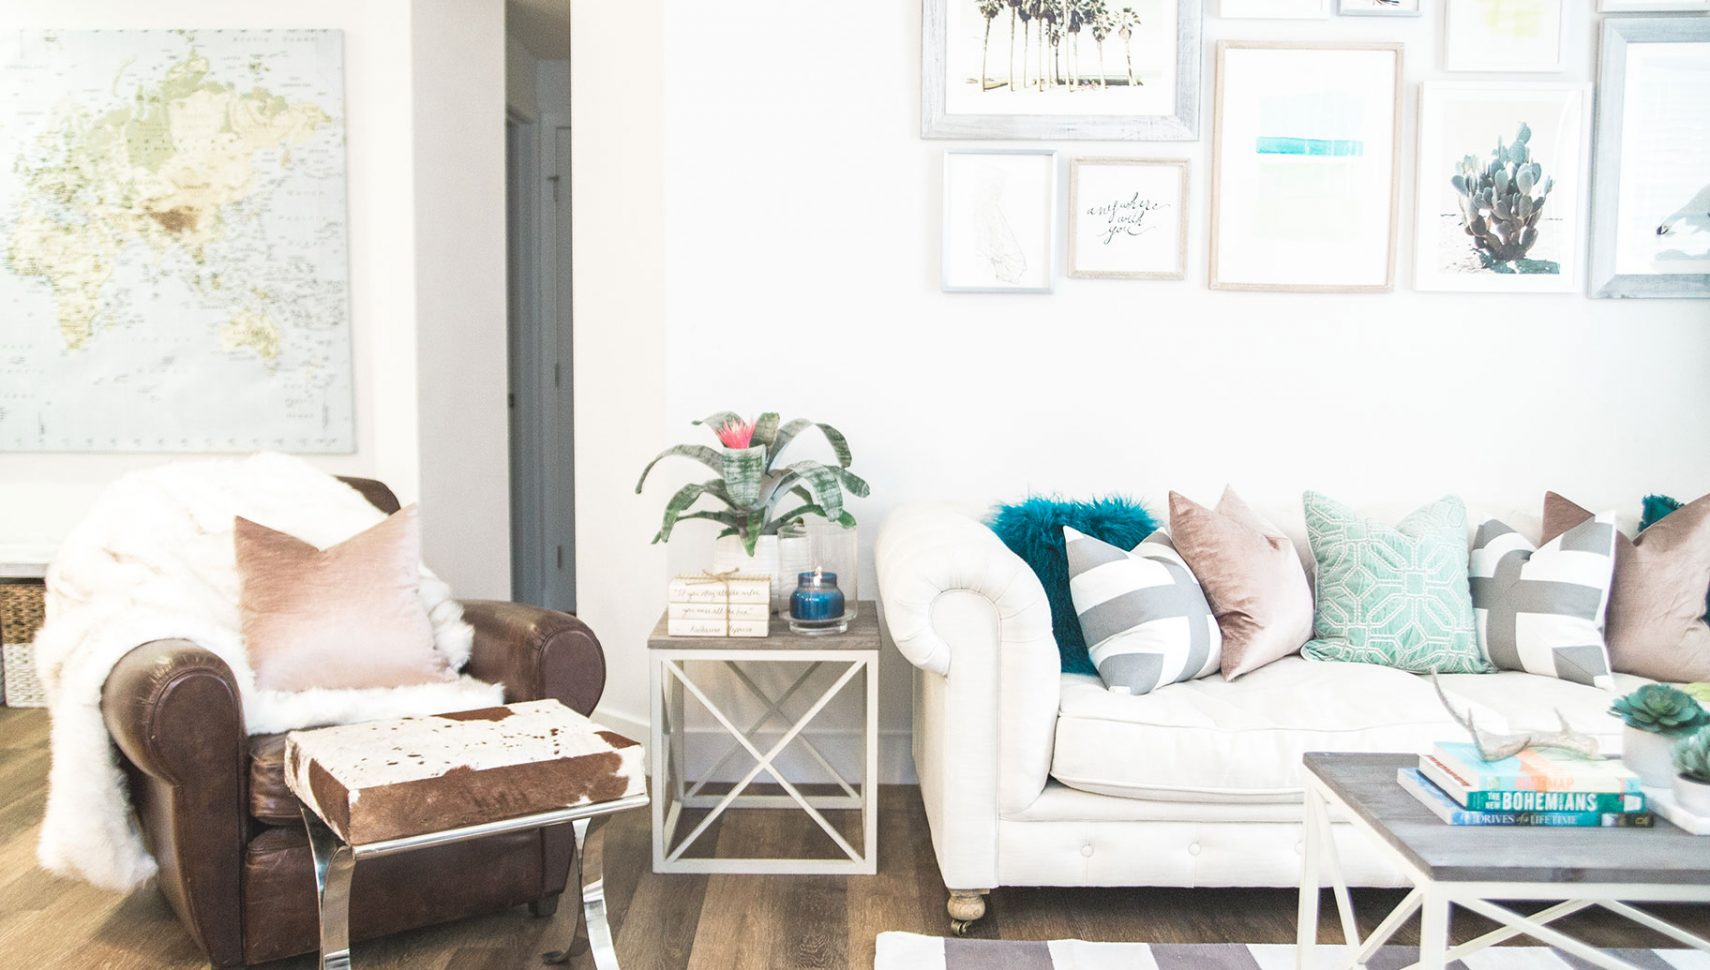 Shop The Look Decorate Like A Pro With Throw Pillows Havenly S Blog